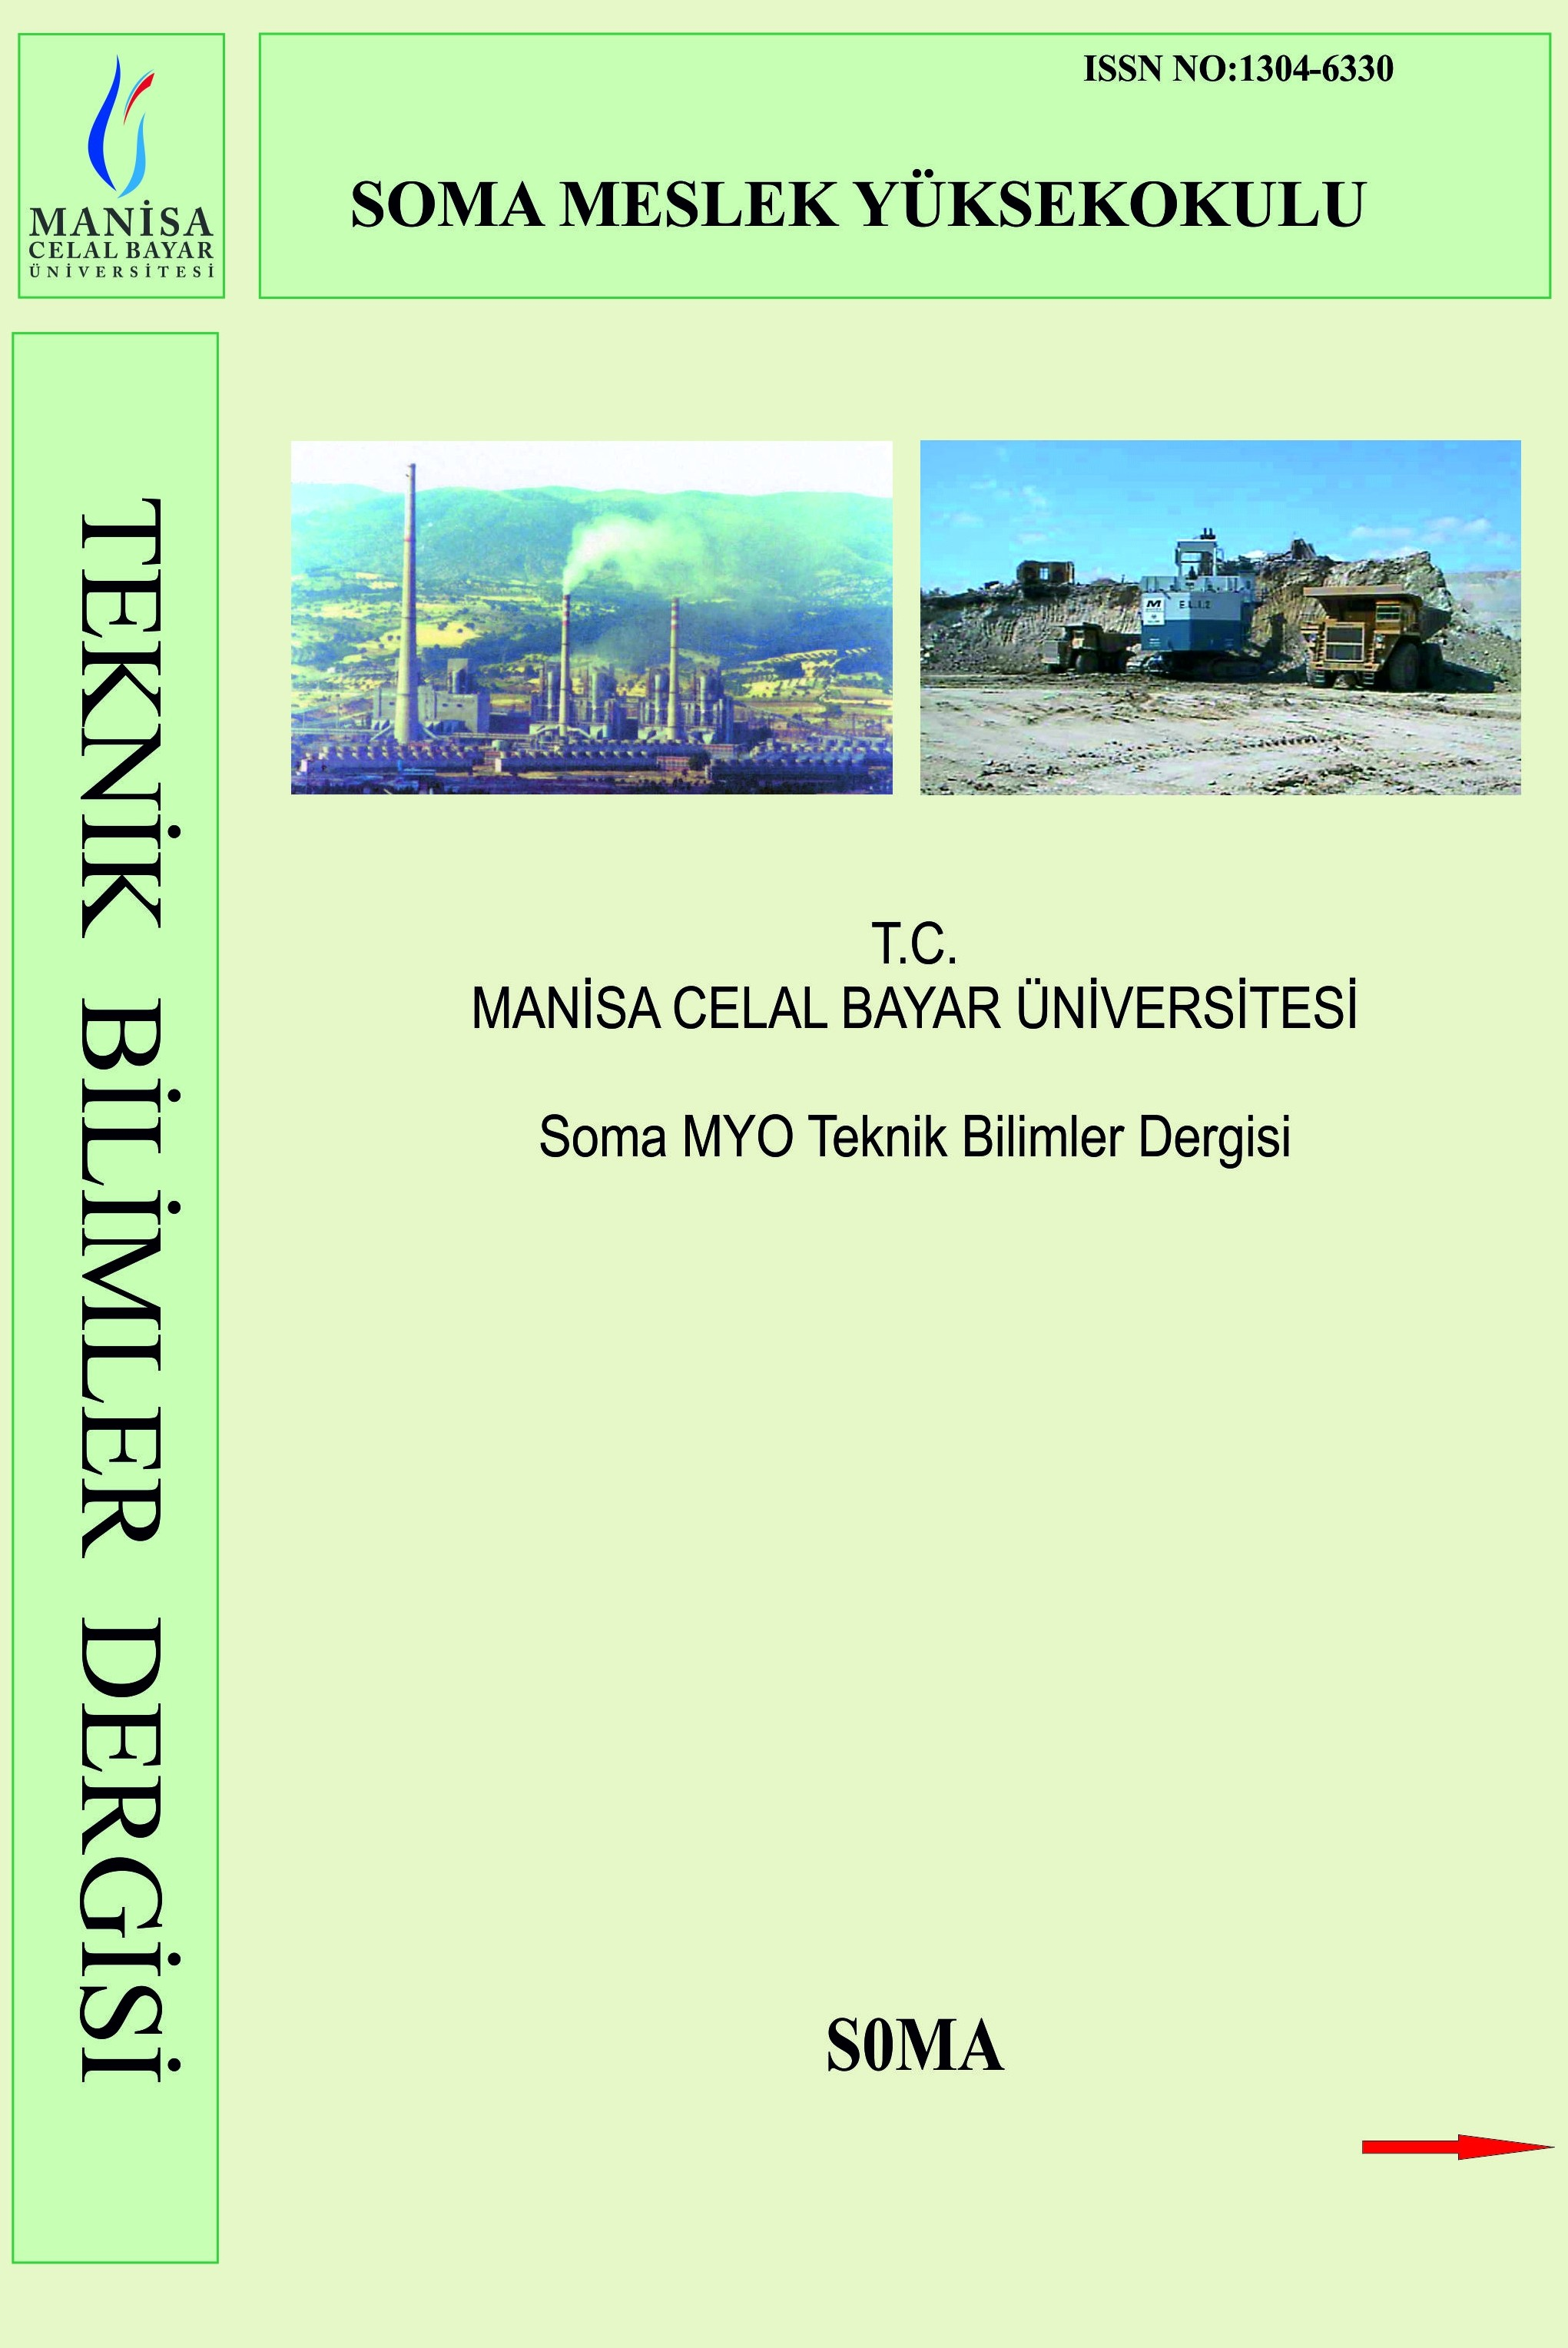 Soma Vocational School Technical Sciences Journal